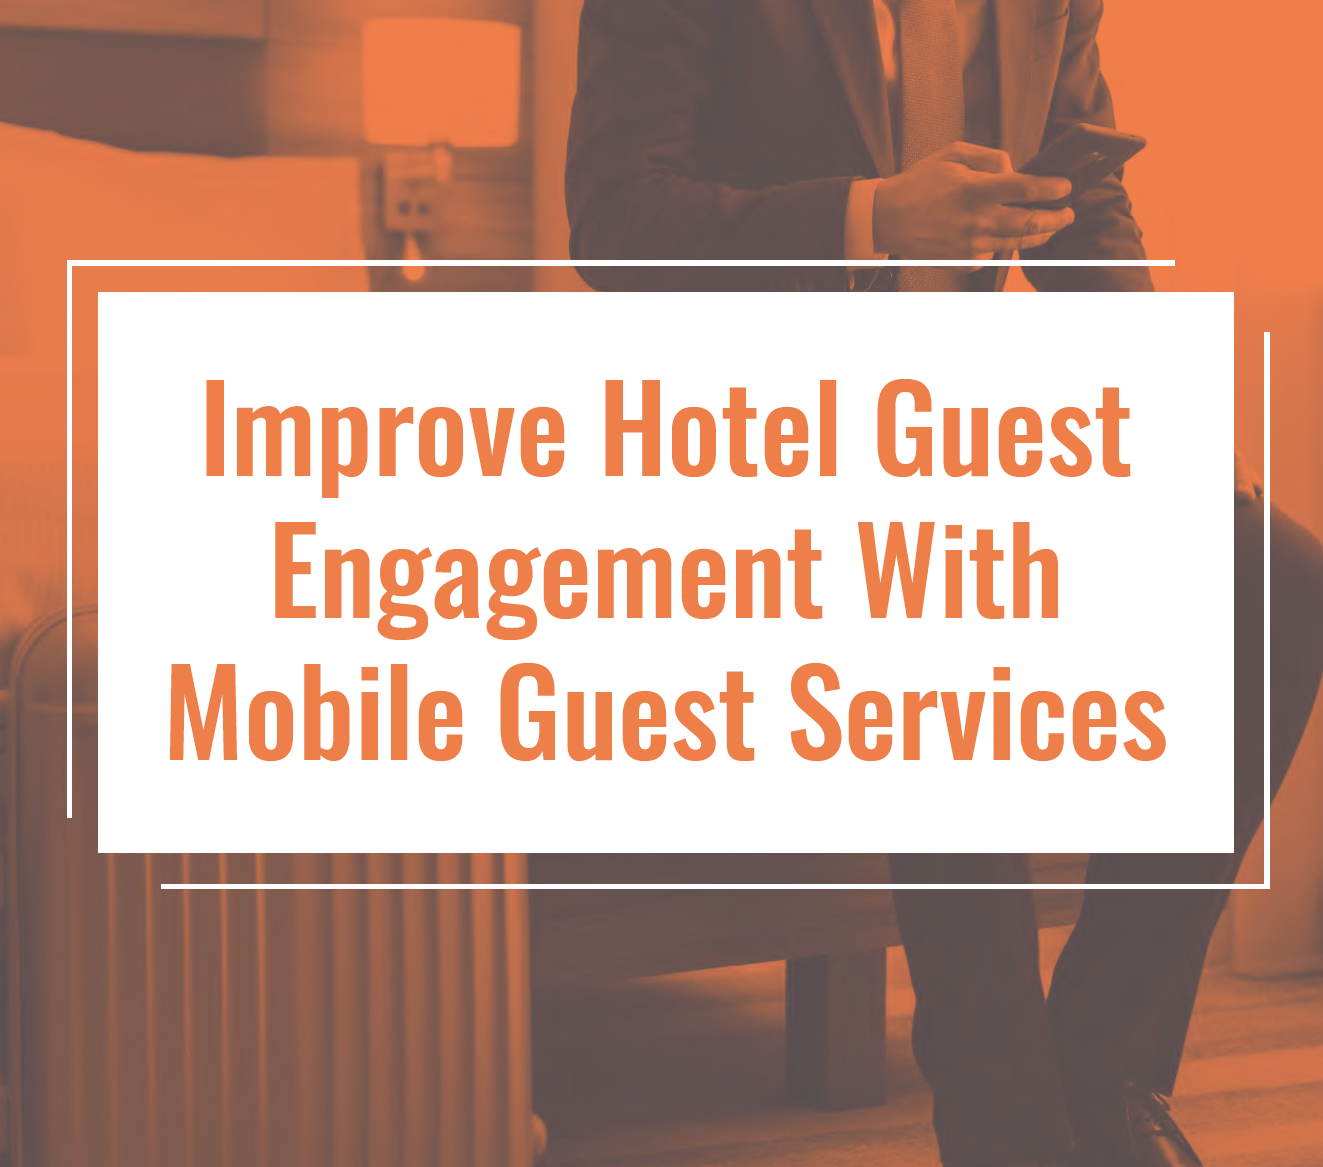 Improve Hotel Guest Engagement with Mobile Guest Services